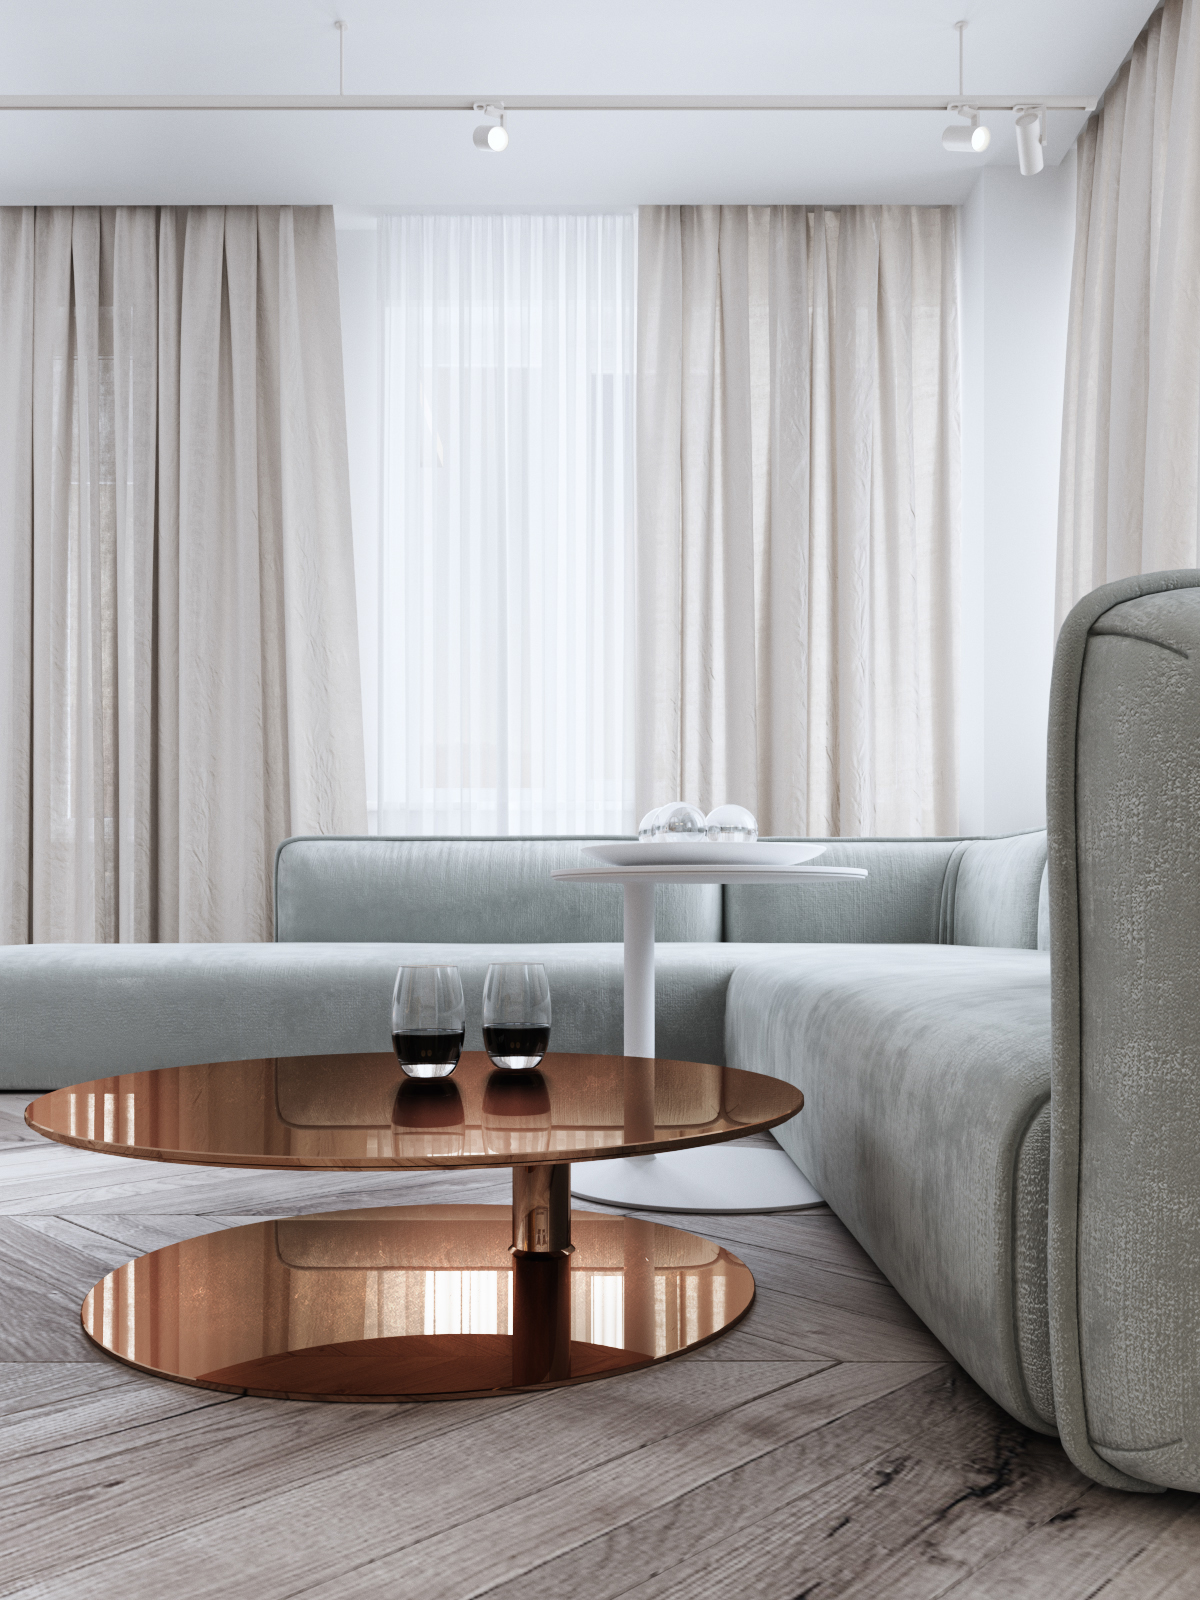 Using Gold Accents In Interior Design images 2